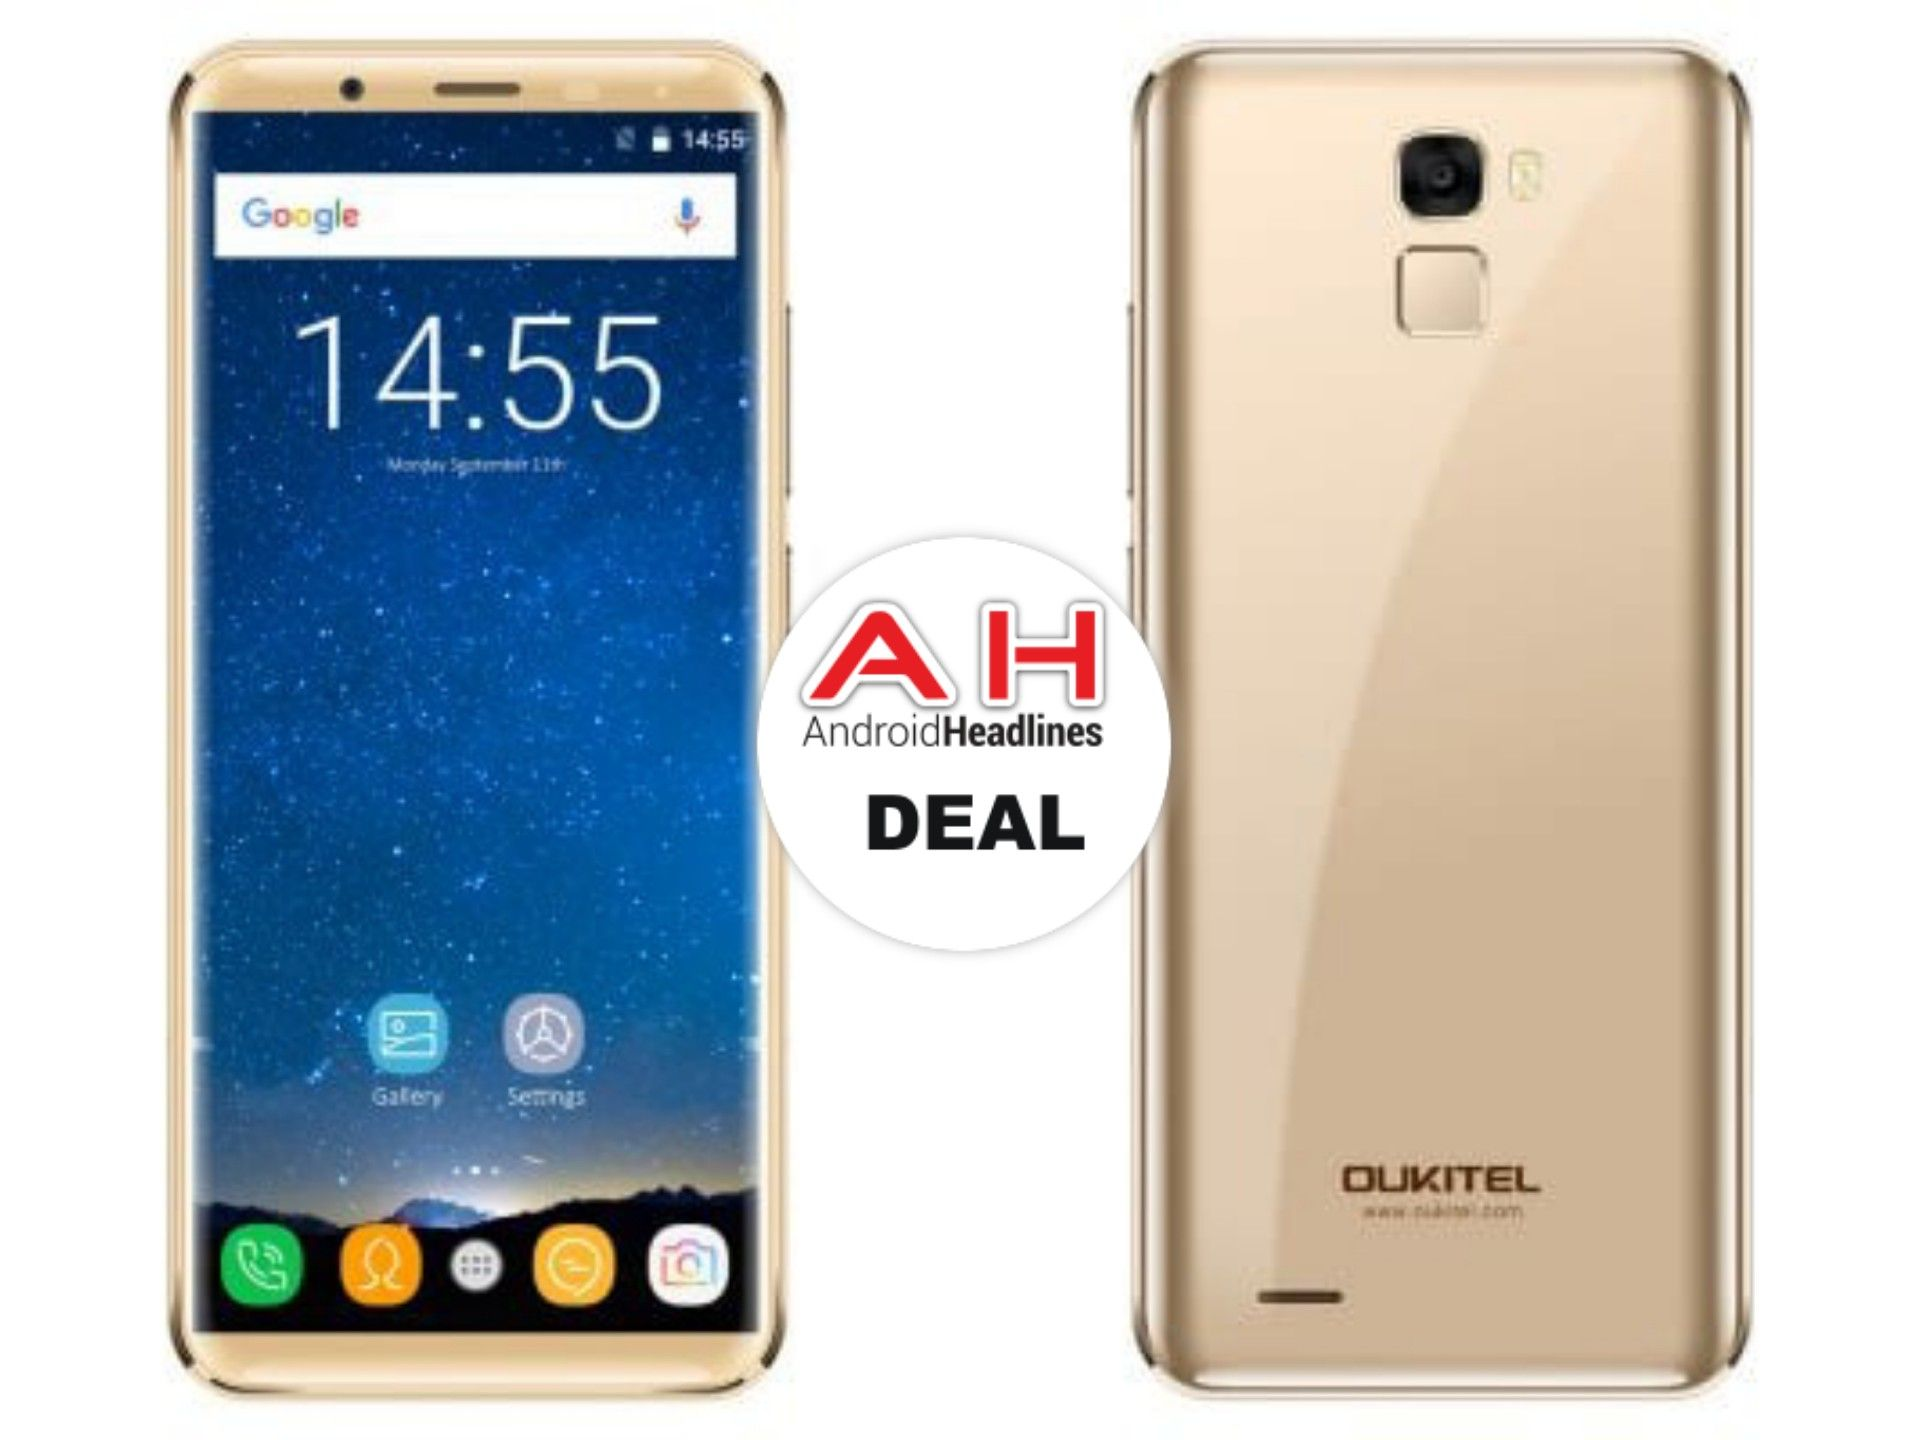 GearBest Deal Big Battery OUKITEL K5000 For $159 99 Android Google